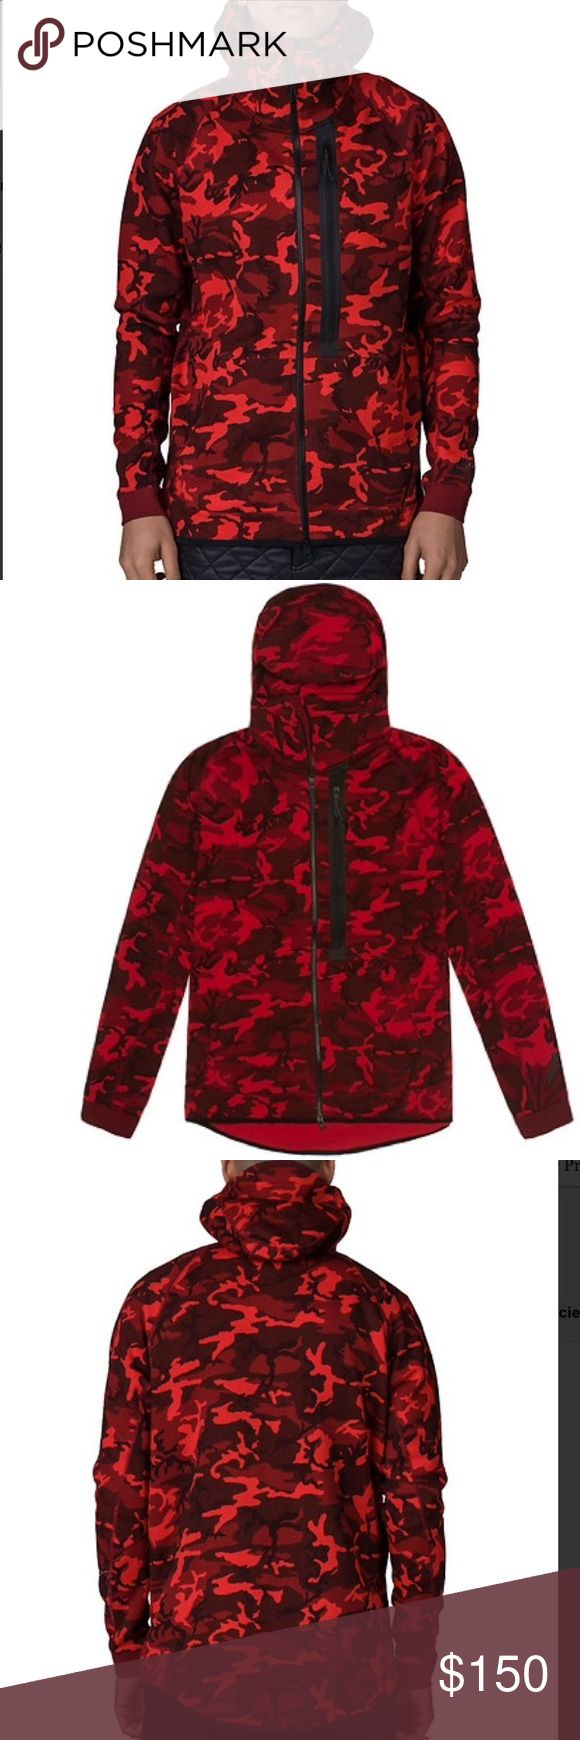 Nike Red Tech Fleece Full Zip Camo Hoodie Sweater NIKE  Tech fleece full zip camouflage hoodie  Long sleeves  All-over camo print  Full zip closure  3 front pockets  Stretch cotton fabric for ultimate comfort  Adjustable pull cord on hood Nike Jackets & Coats Performance Jackets